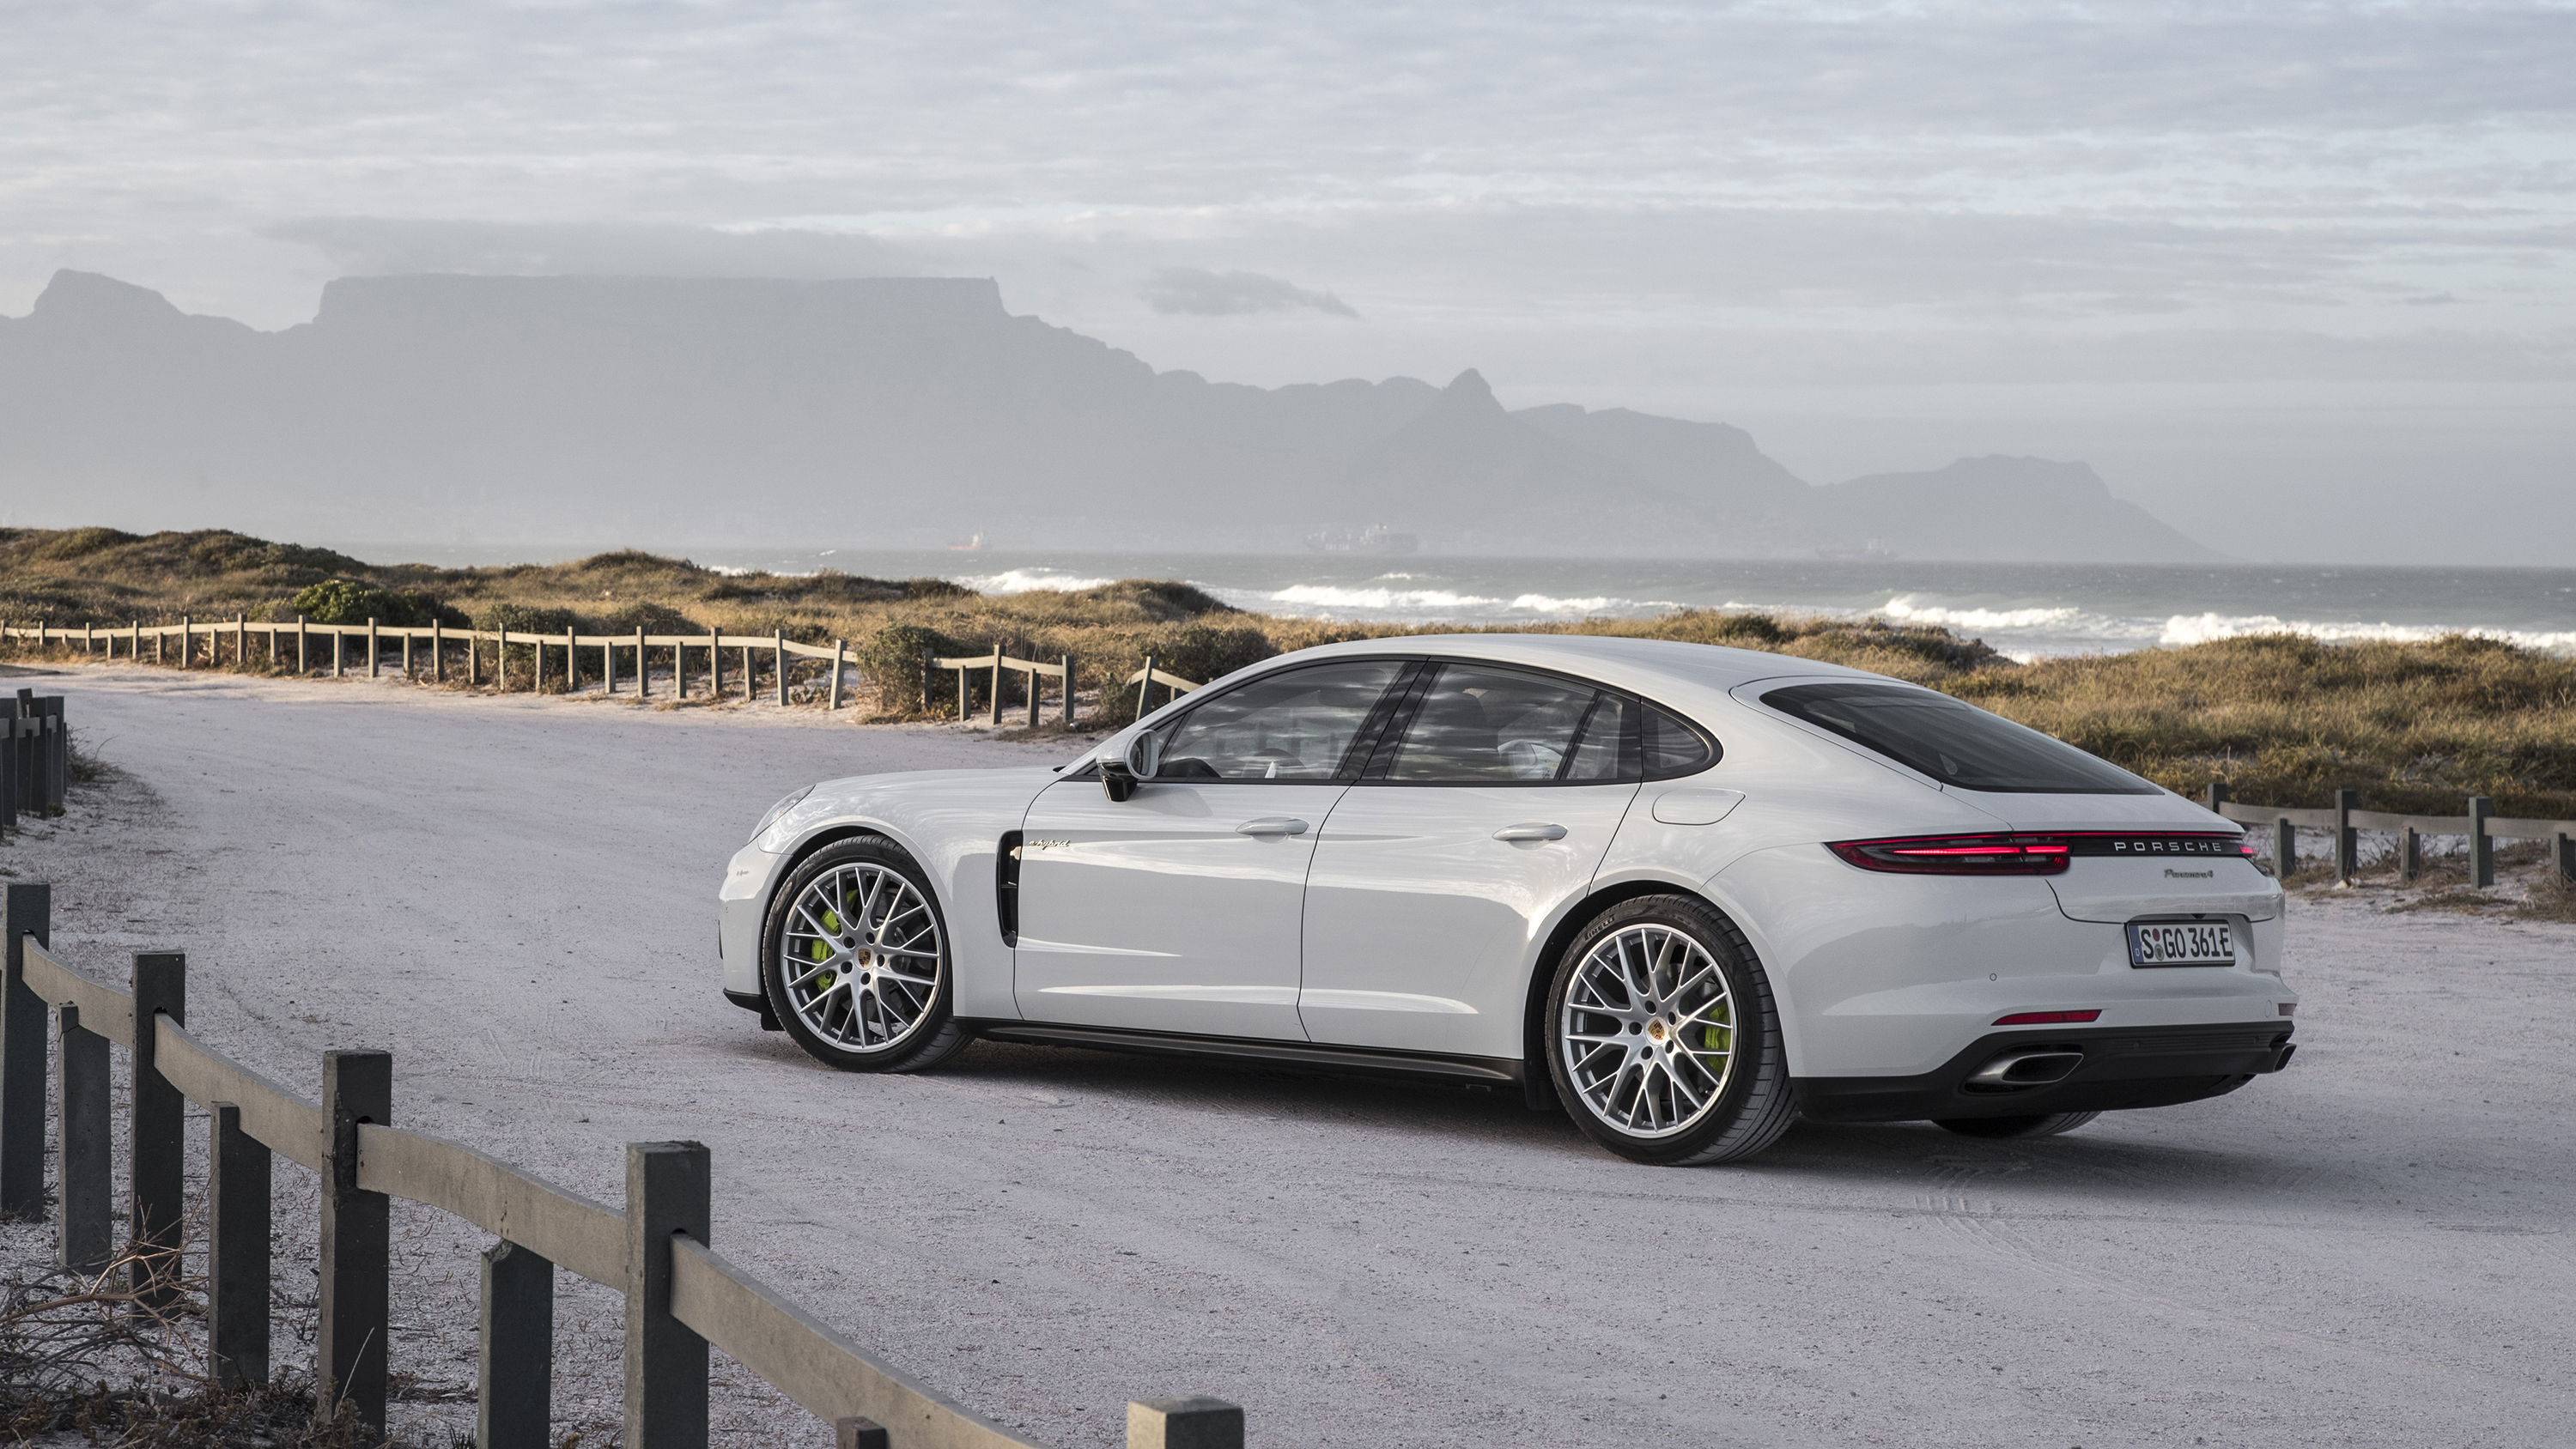 2017 porsche panamera 4 e hybrid review photos caradvice. Black Bedroom Furniture Sets. Home Design Ideas